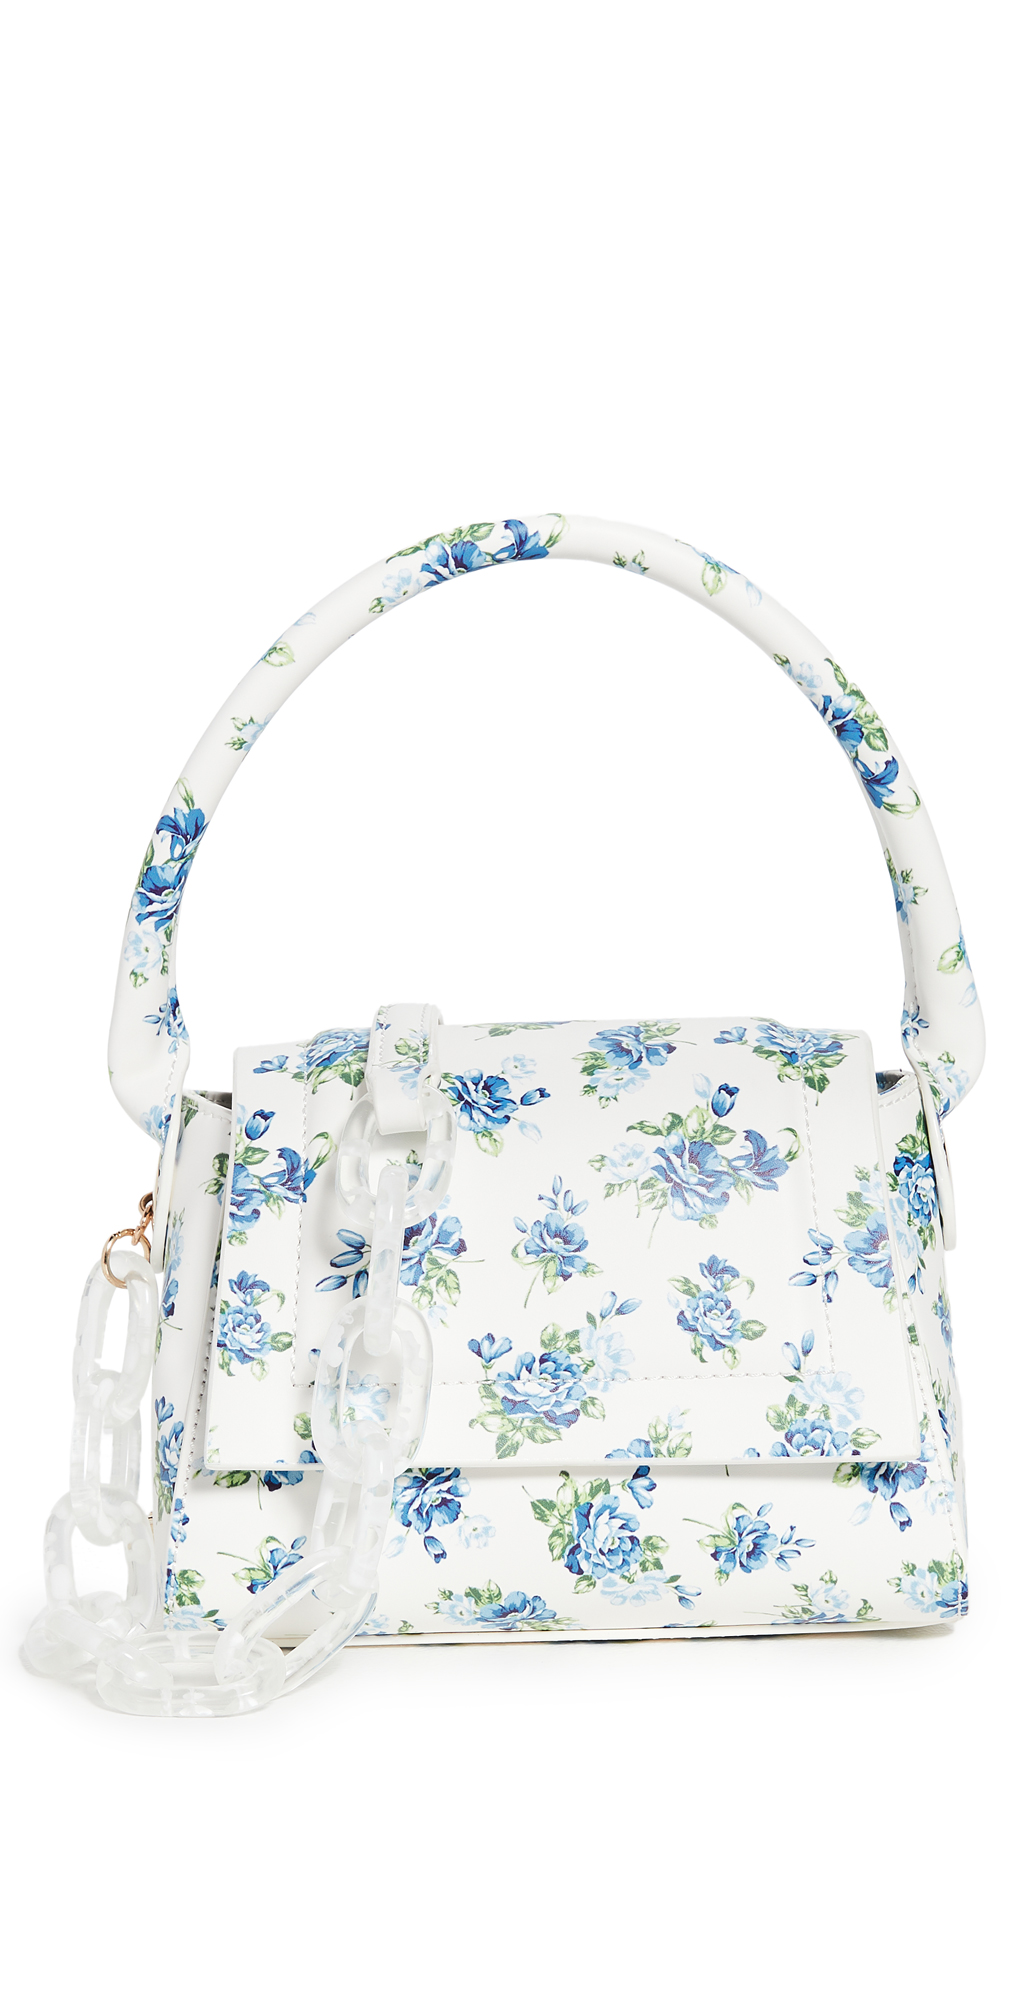 House of Want HOW We Are Chic Satchel